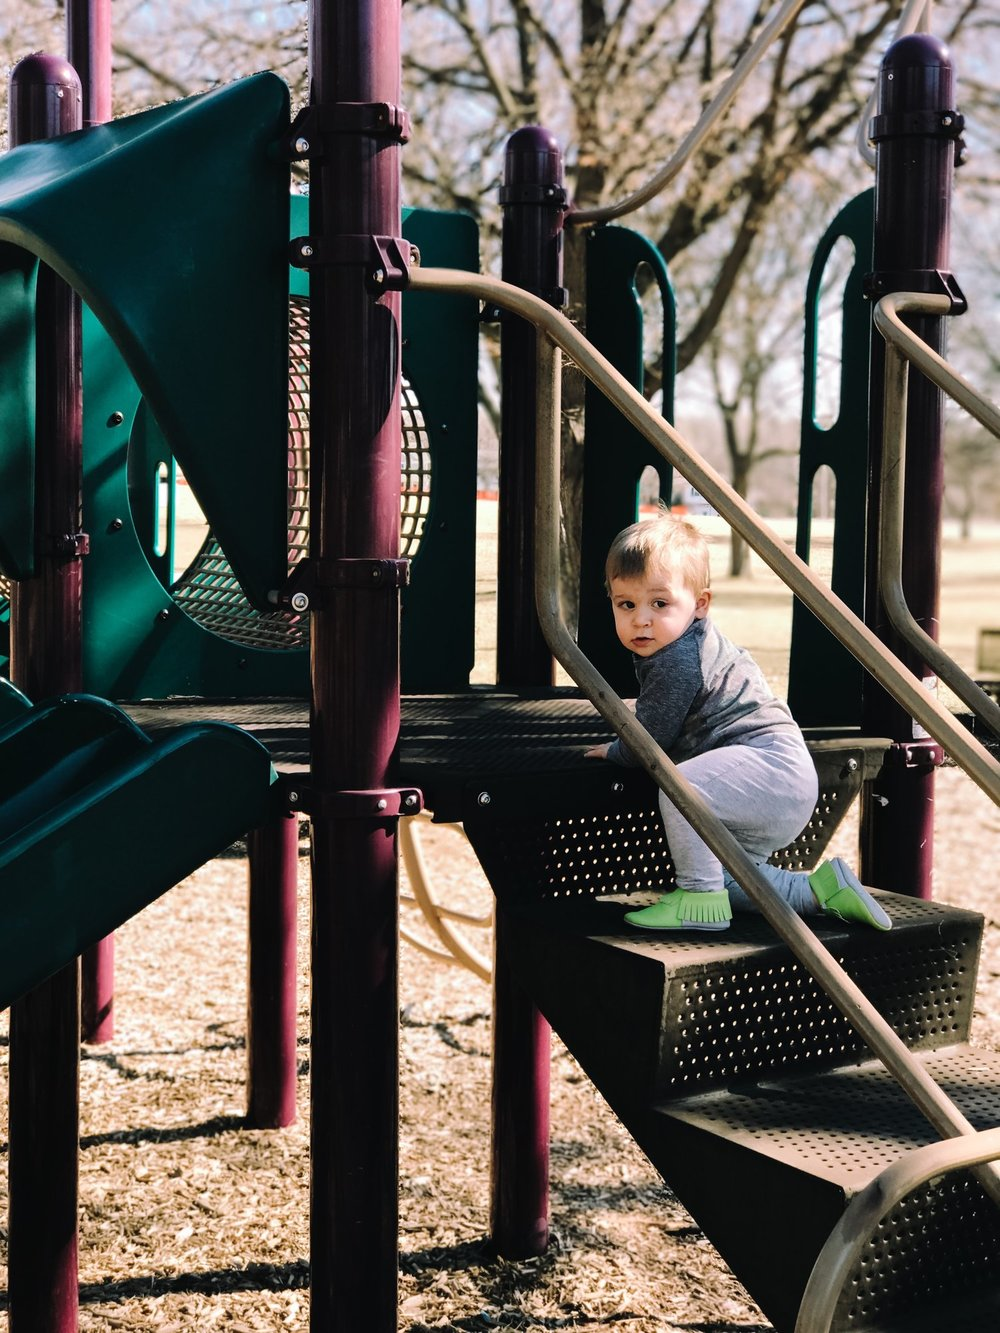 Playing at our local community park